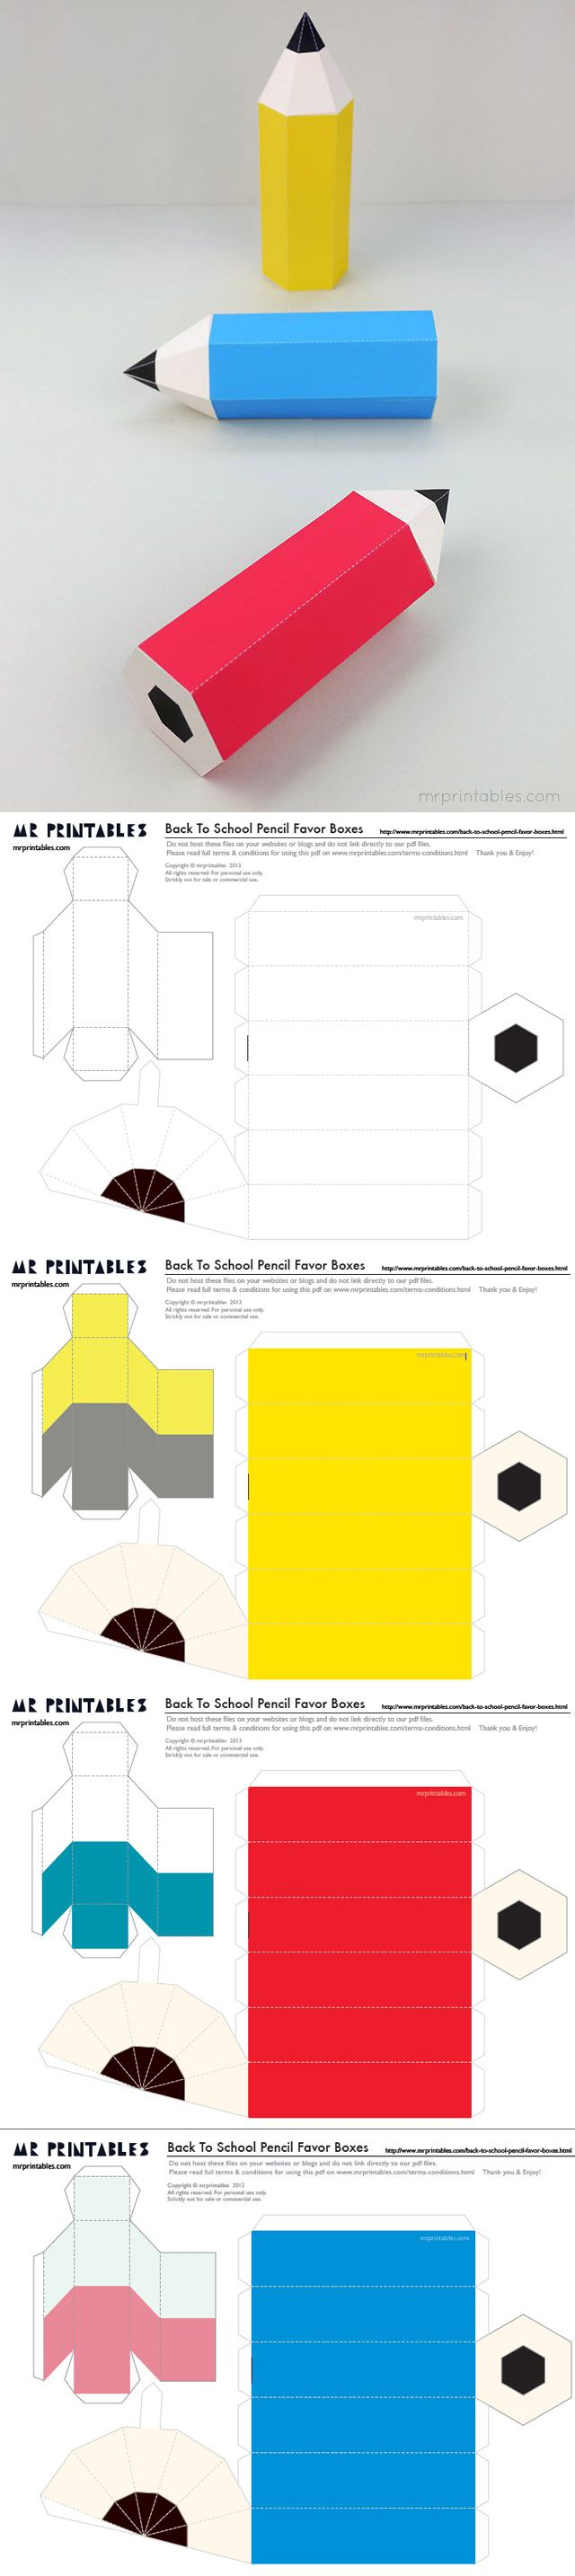 Pencil Box. Templates: